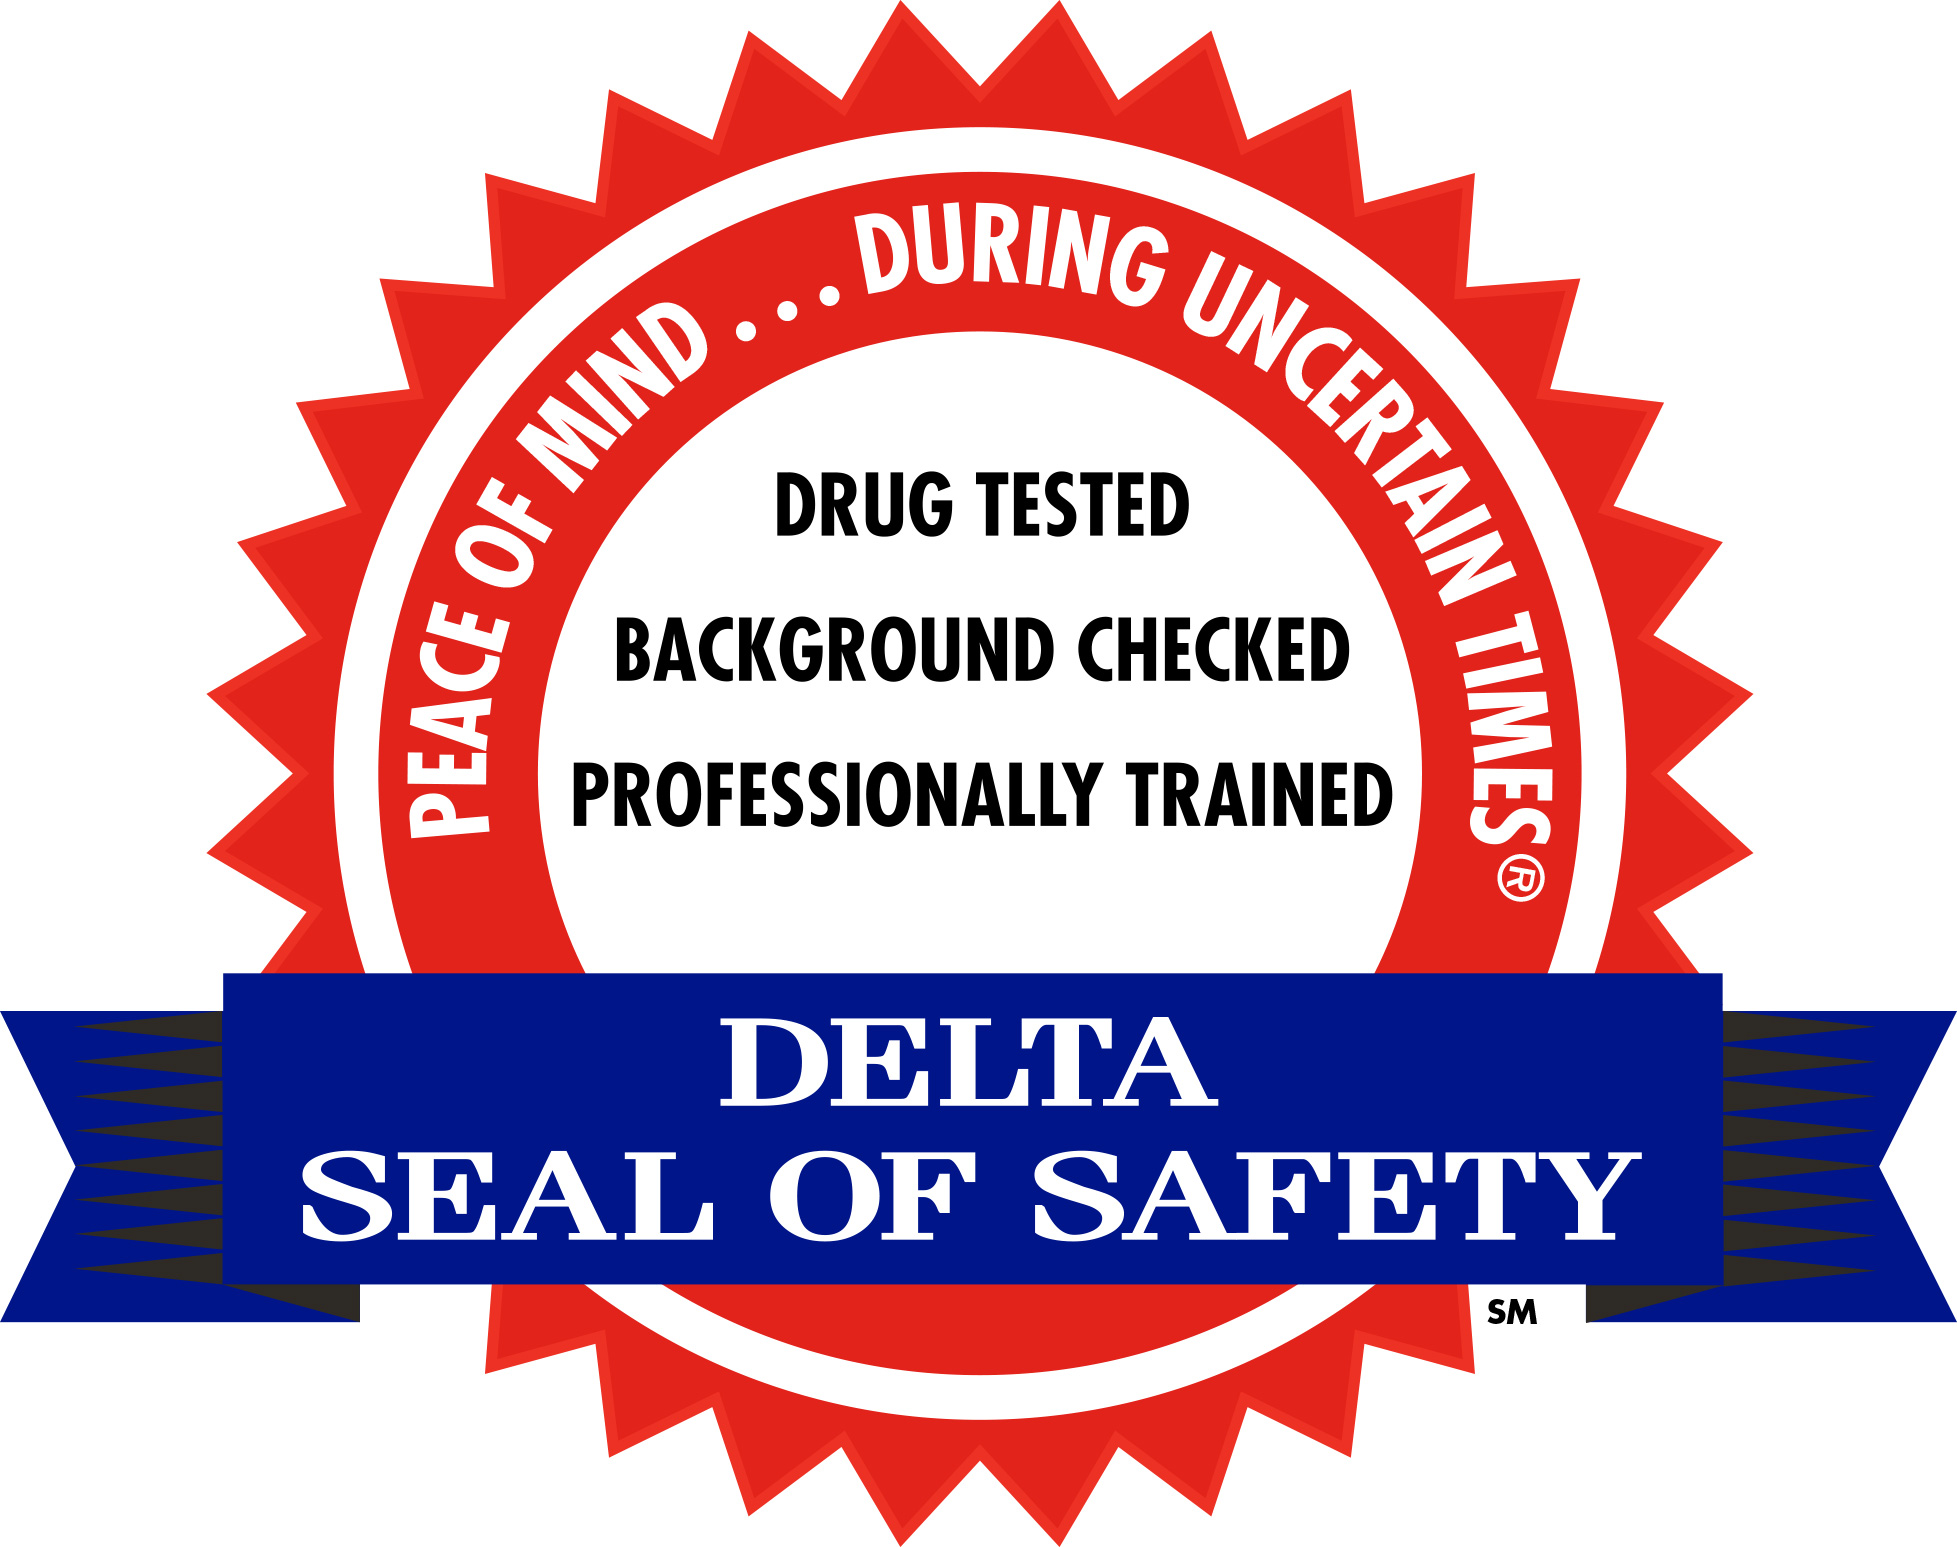 delta seal of safety